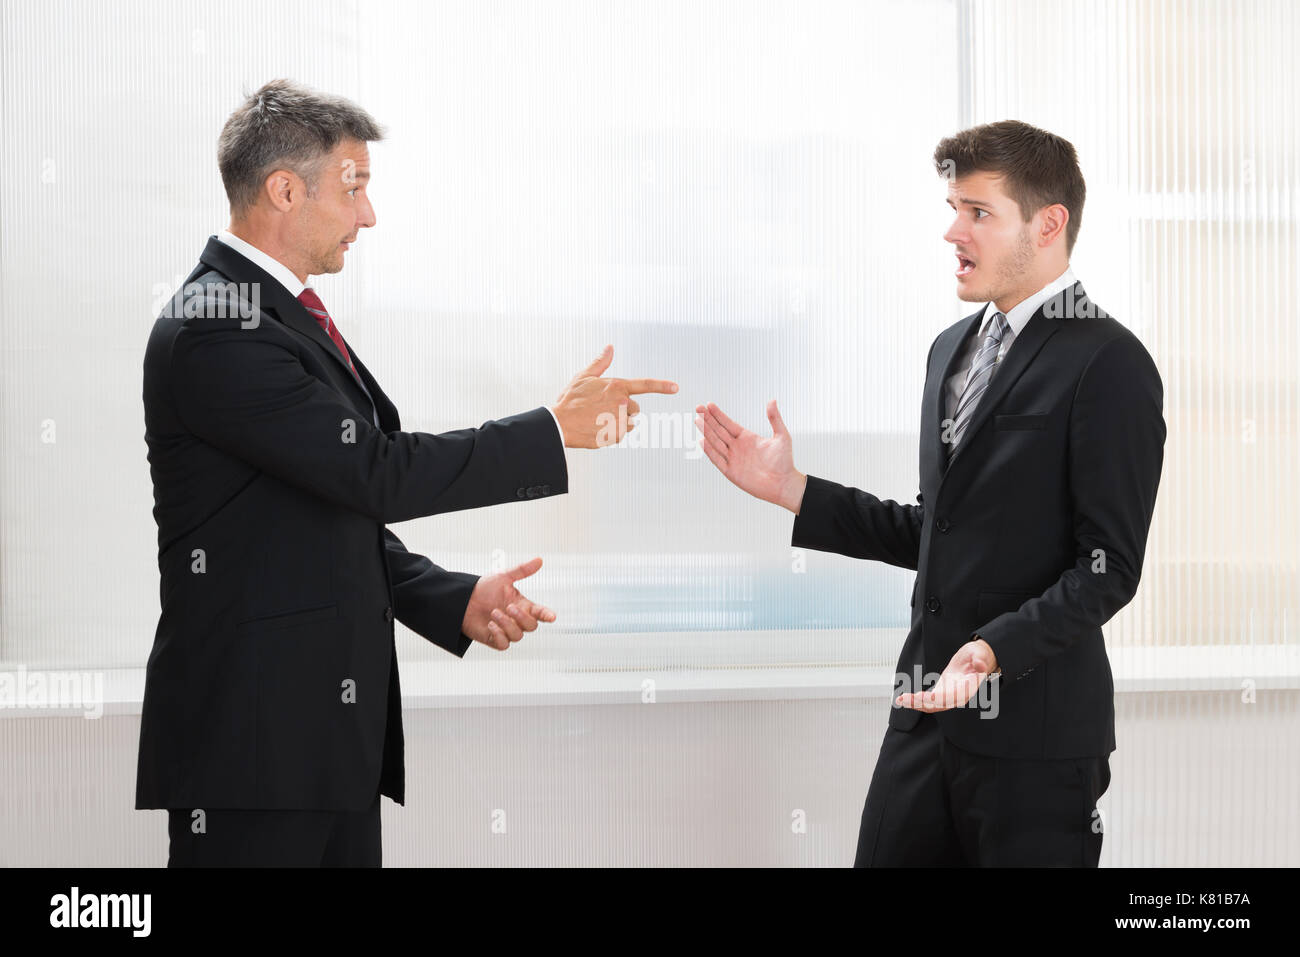 Two Businessmen Quarreling With Each Other In Office - Stock Image